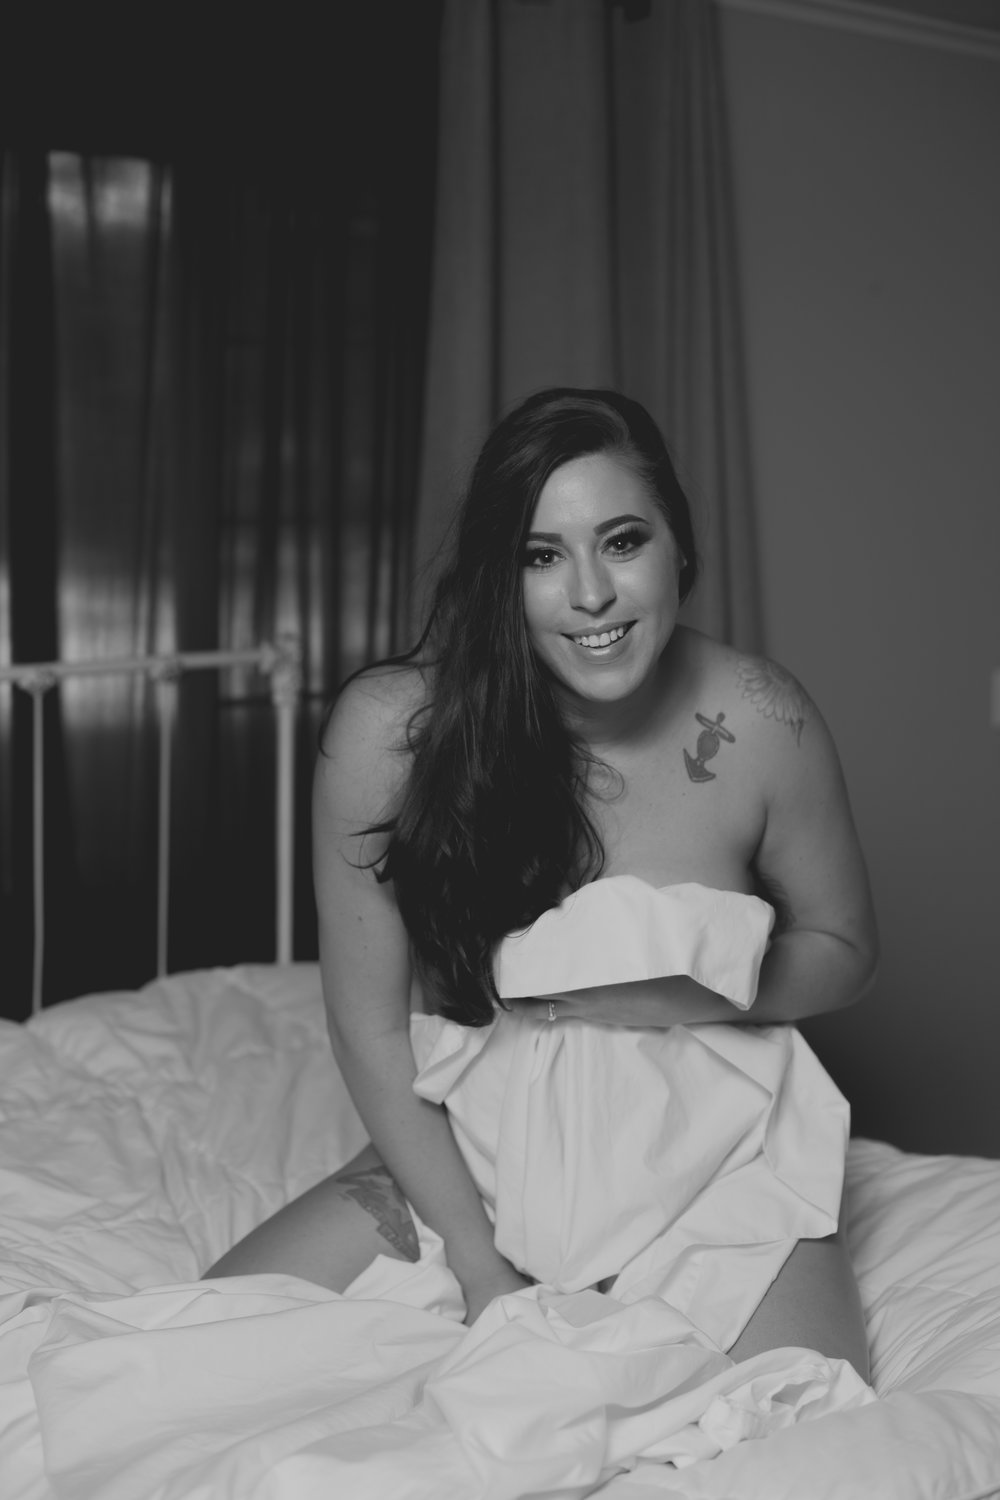 Magnolia Grace Photography | Shreveport Boudoir, Beauty, & Wedding Photographer | Bossier Boudoir & Beauty Photographer | Mrs. Swift, a White Sheet, & Tattoos | Boudoir Session Shreveport-Bossier La